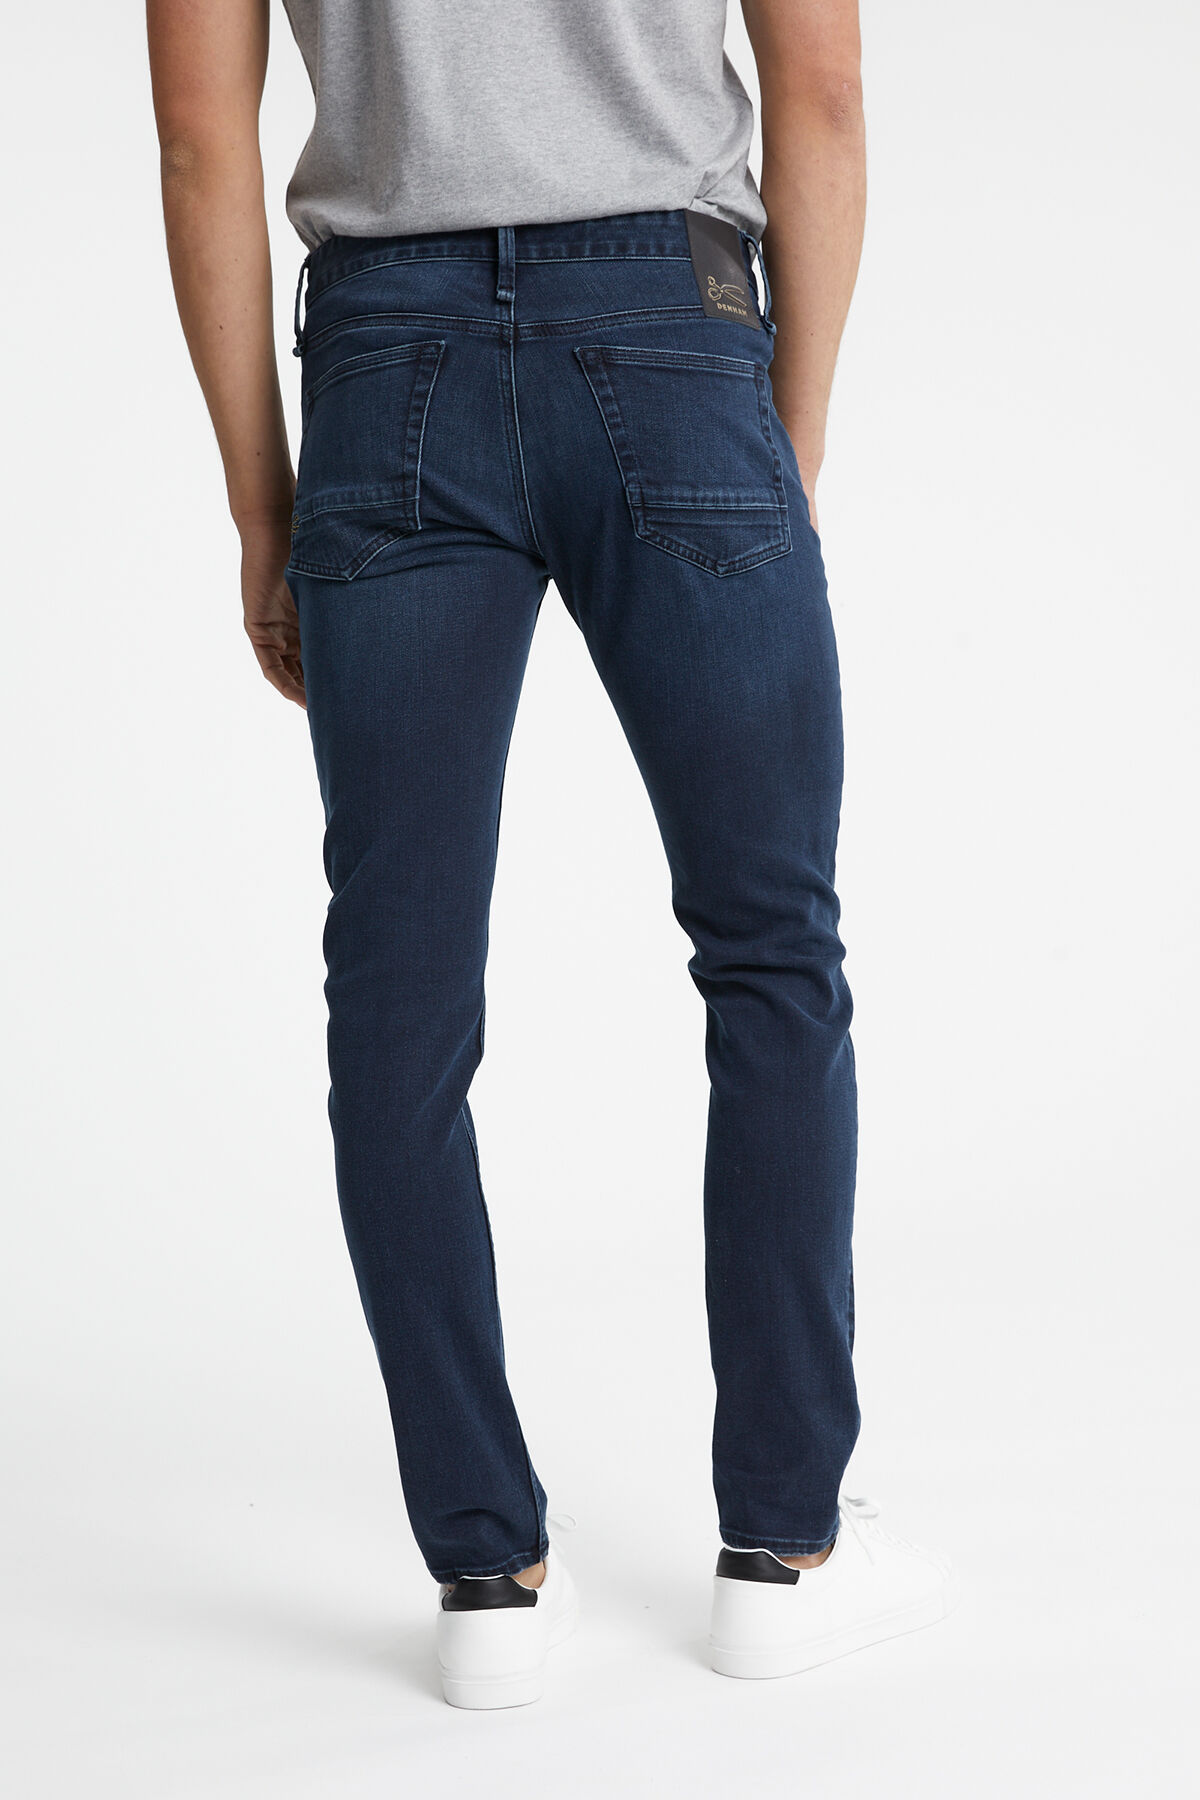 BOLT Blue-black, light fade - Skinny Fit